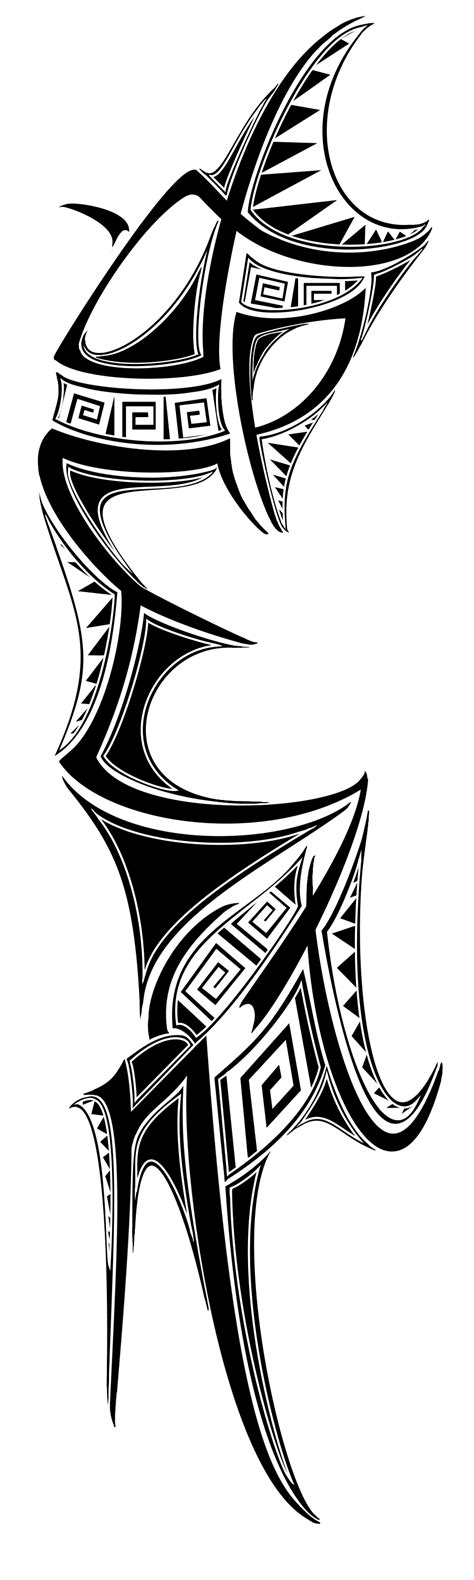 arete tattoo design 2 by eternalnight11 on deviantart